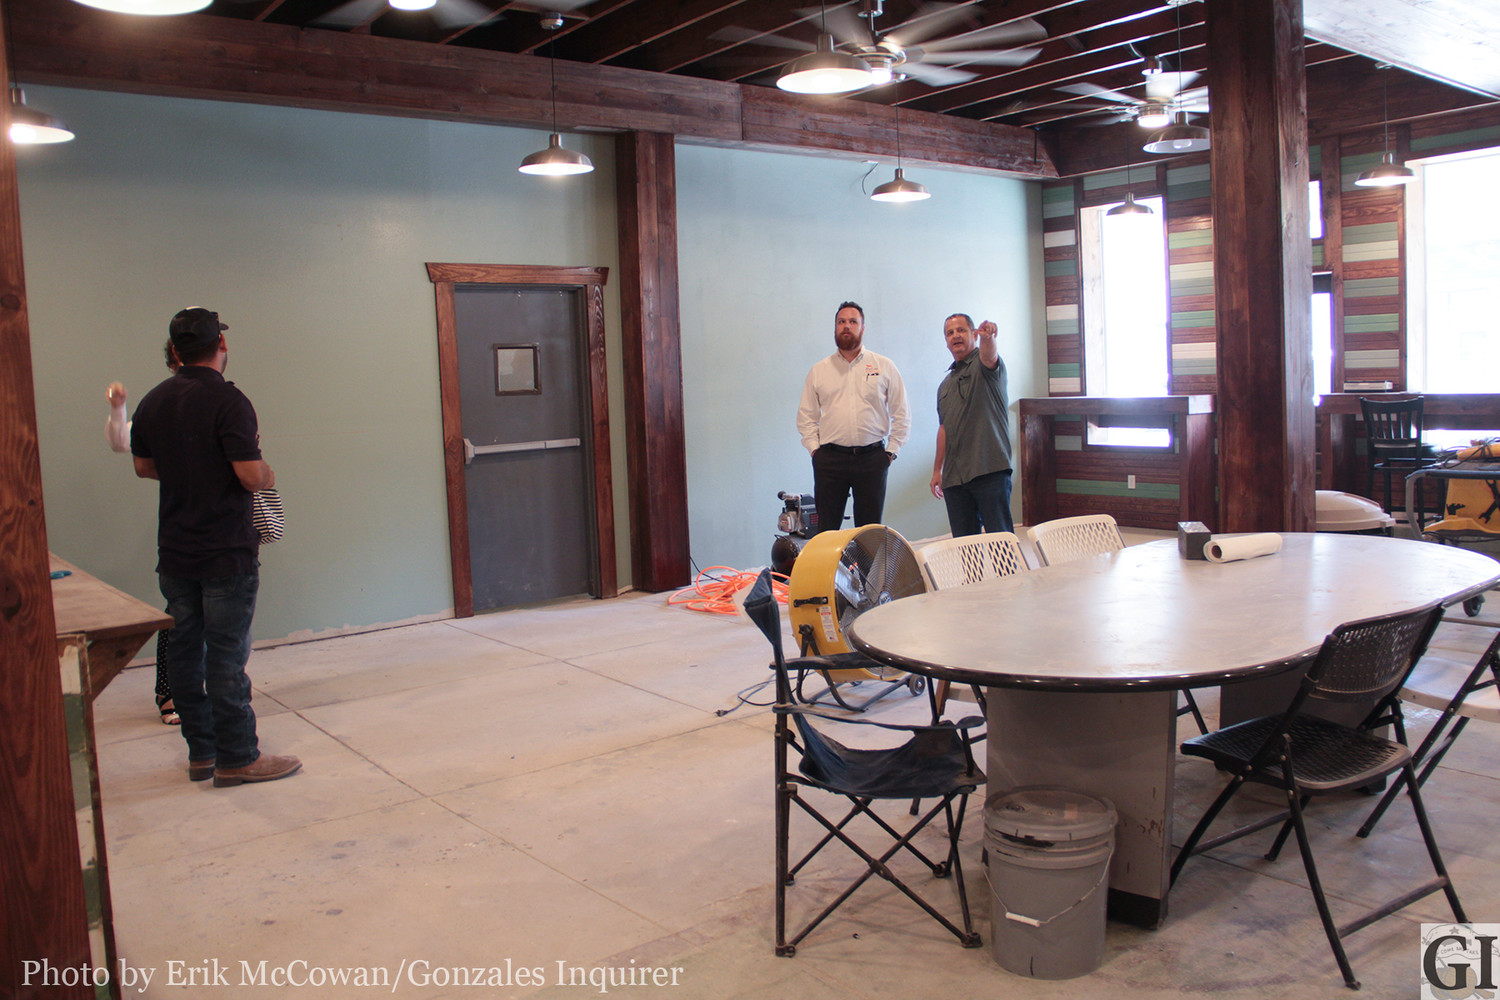 Members of GEDC take a tour of the soon-to-be-opened St. George Deli & Coffee Shop. There are also 7 offices within the complex that will host various small businesses.